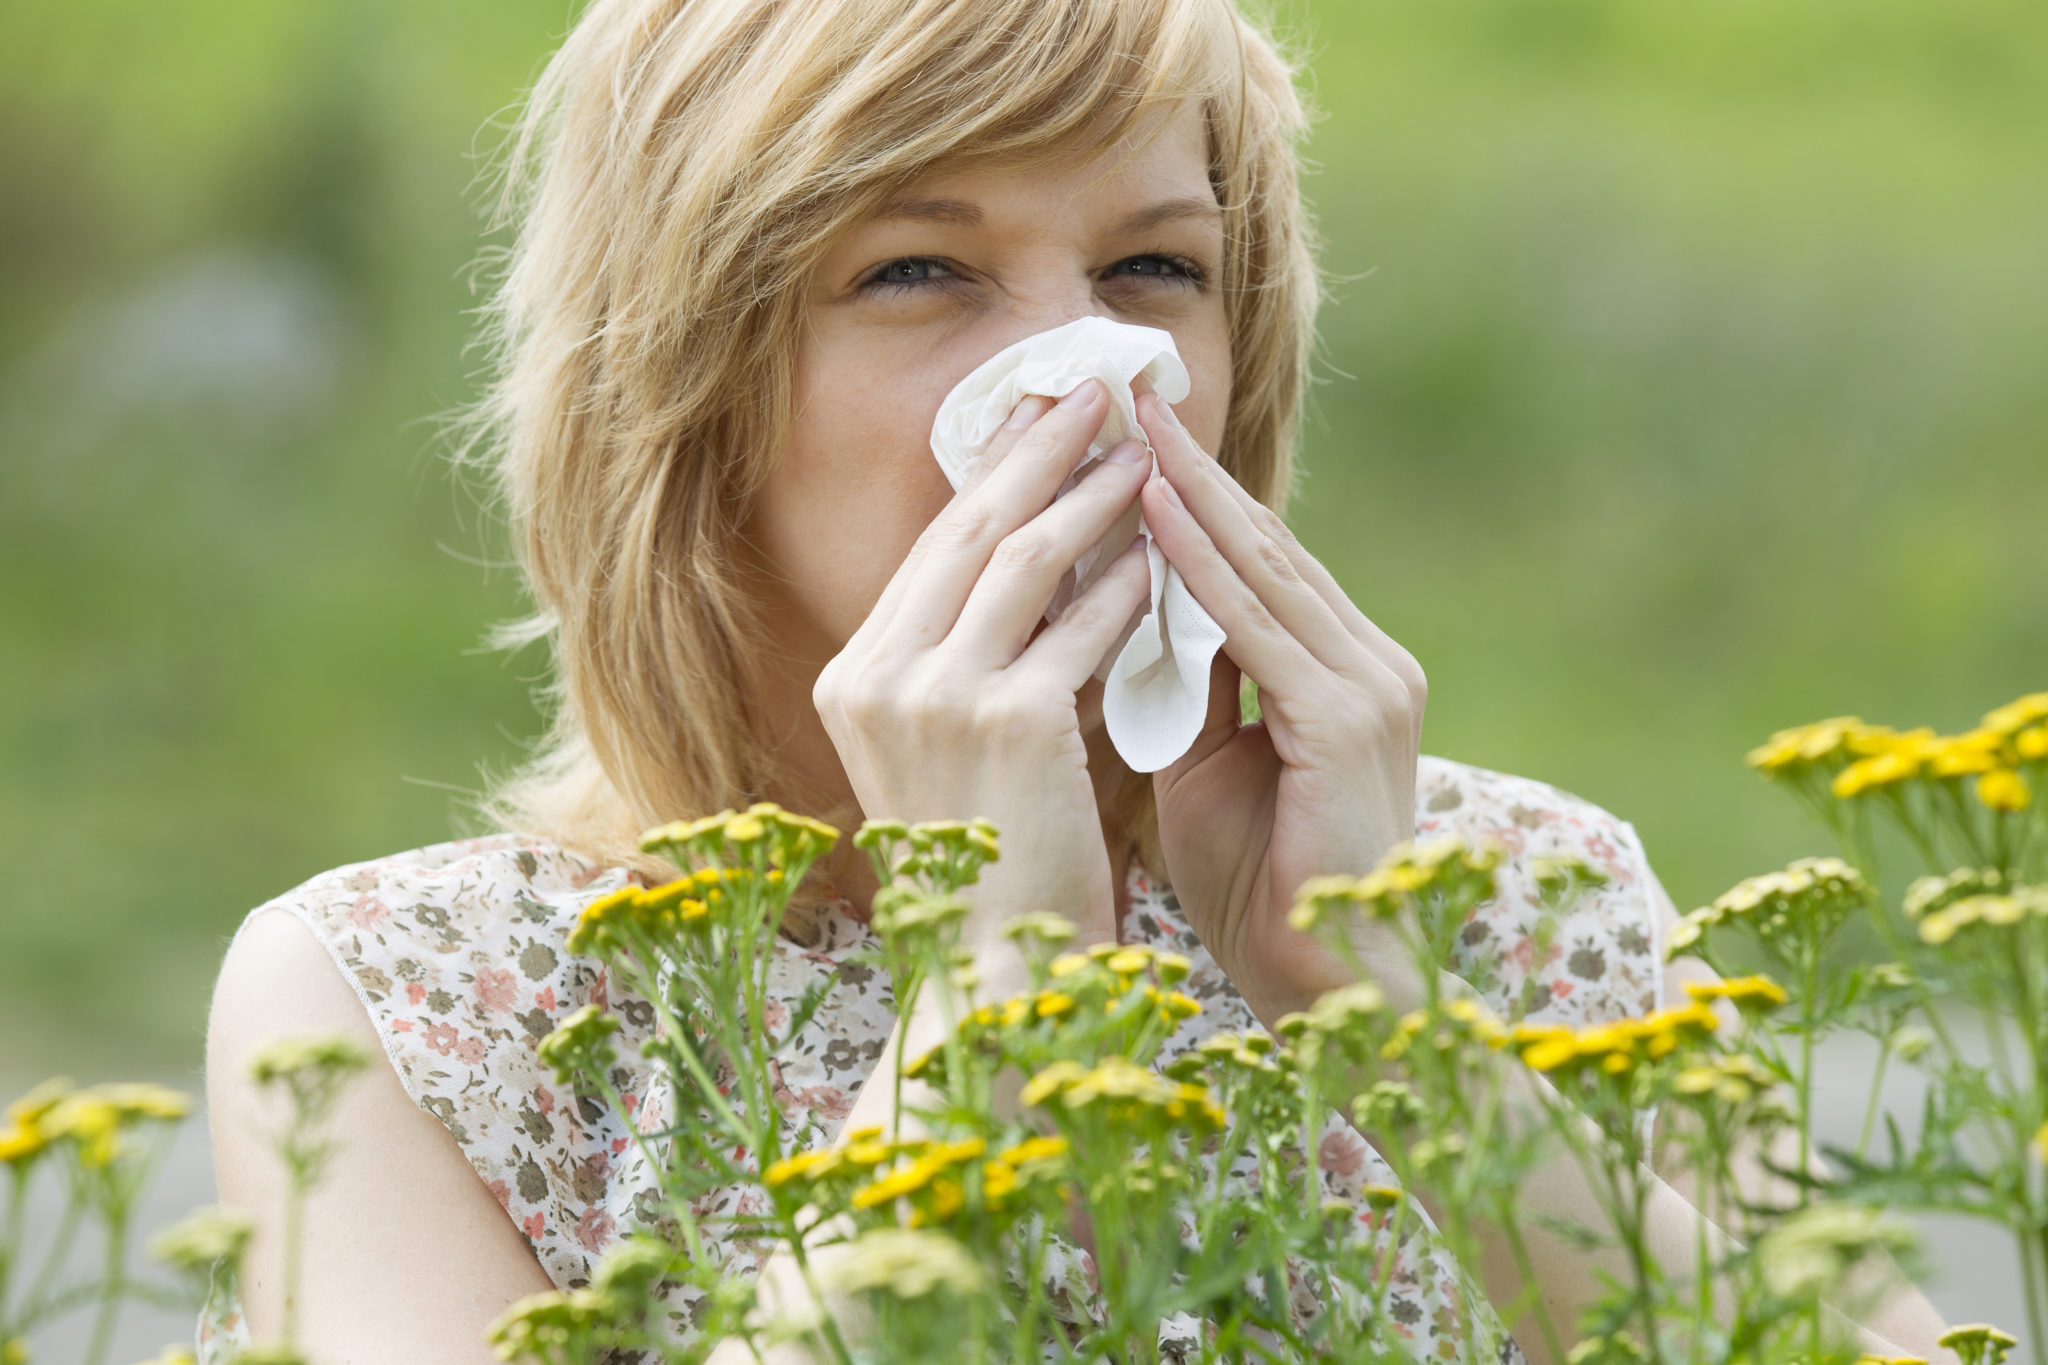 Outdoor Allergens Can Be An Even Bigger Problem Indoors!